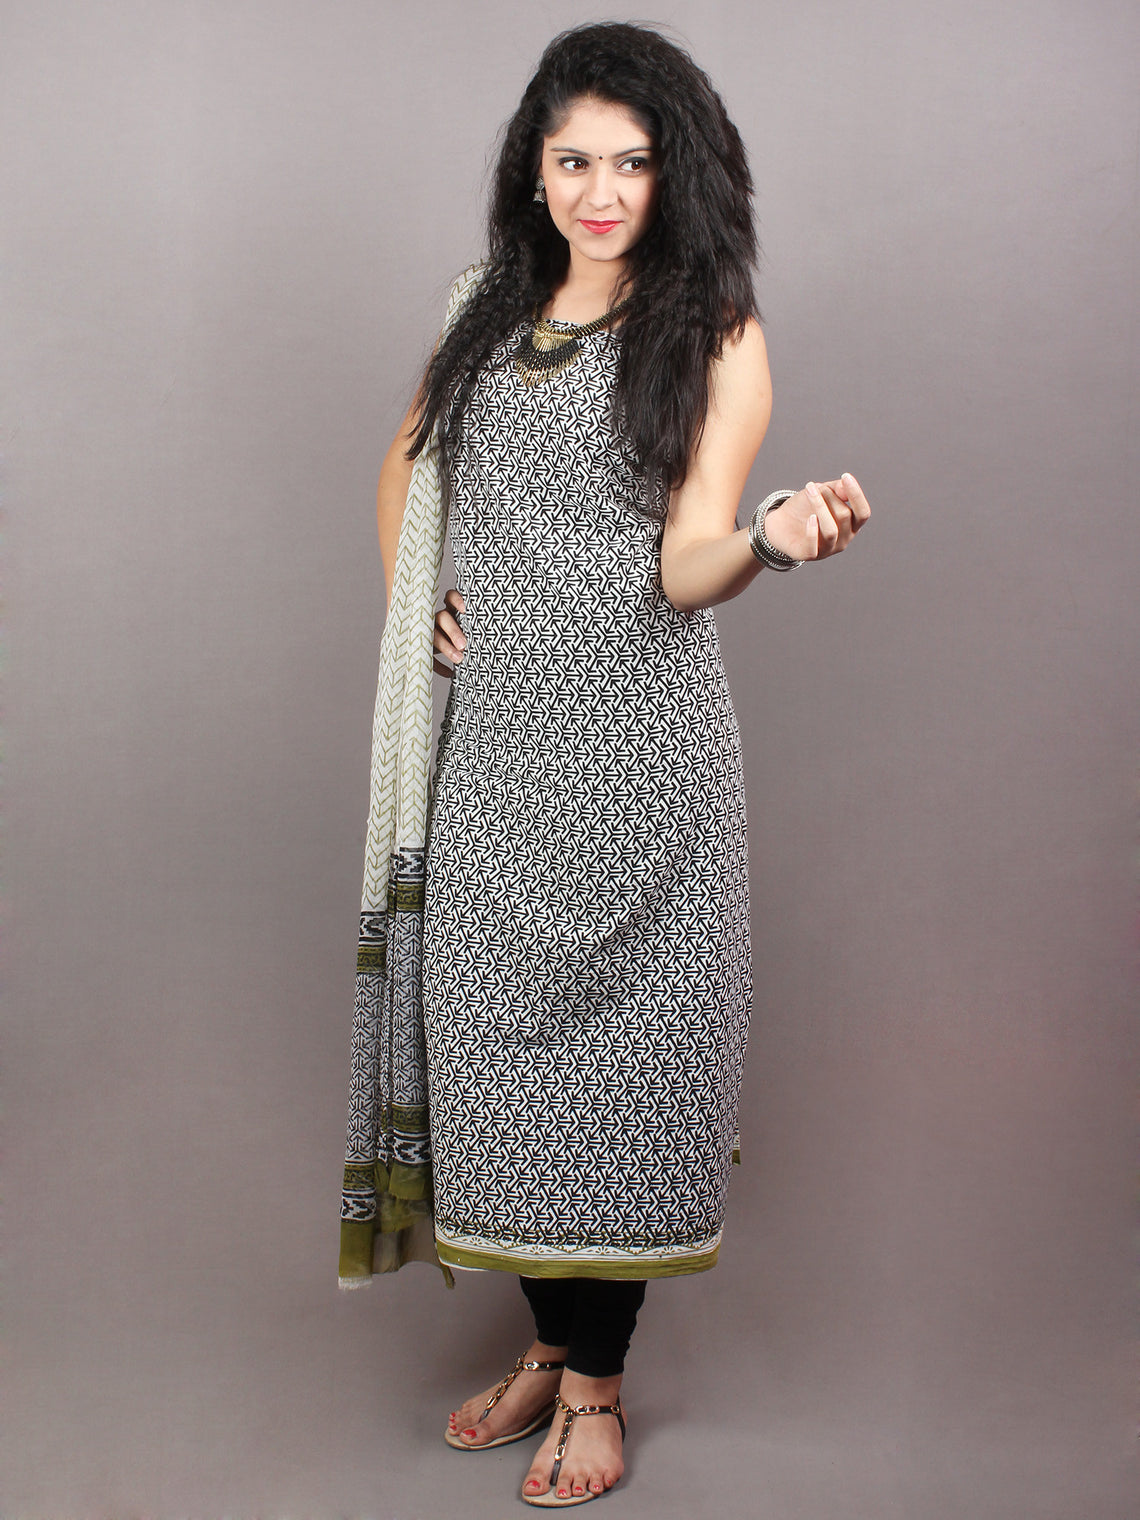 Black White Olive Green Hand Block Printed Cotton Suit-Salwar Fabric With Chiffon Dupatta - S1628105